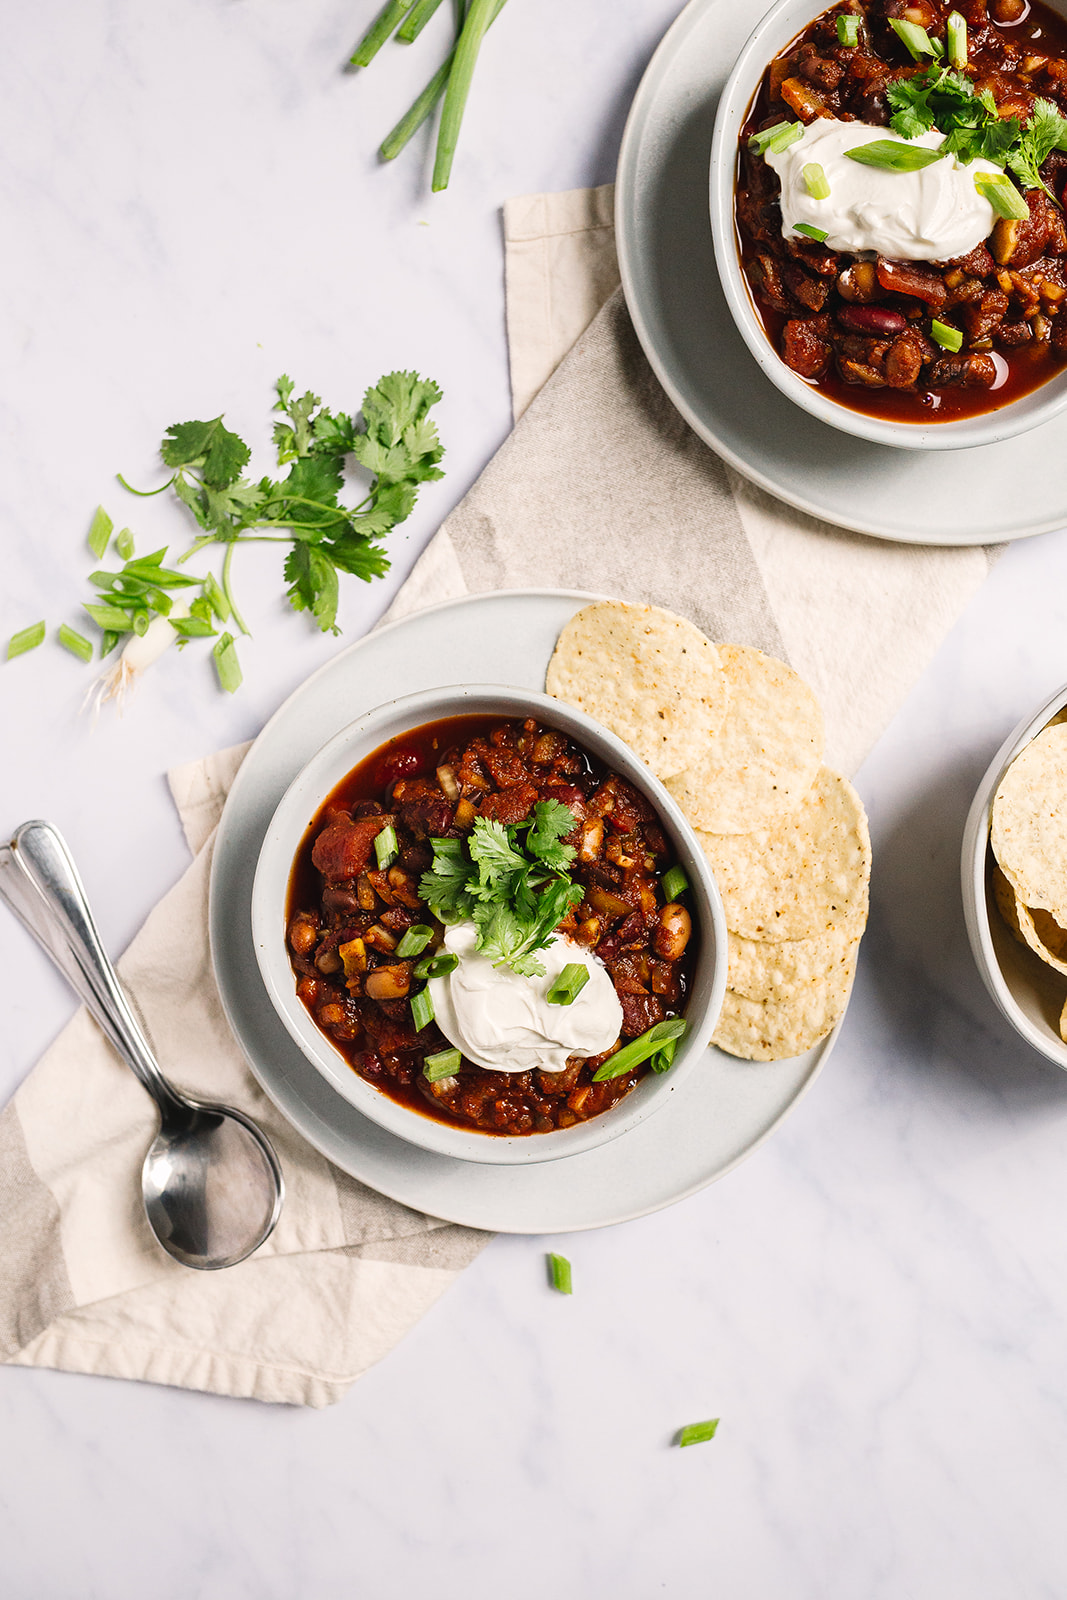 My Famous Three Bean Vegetarian Chili